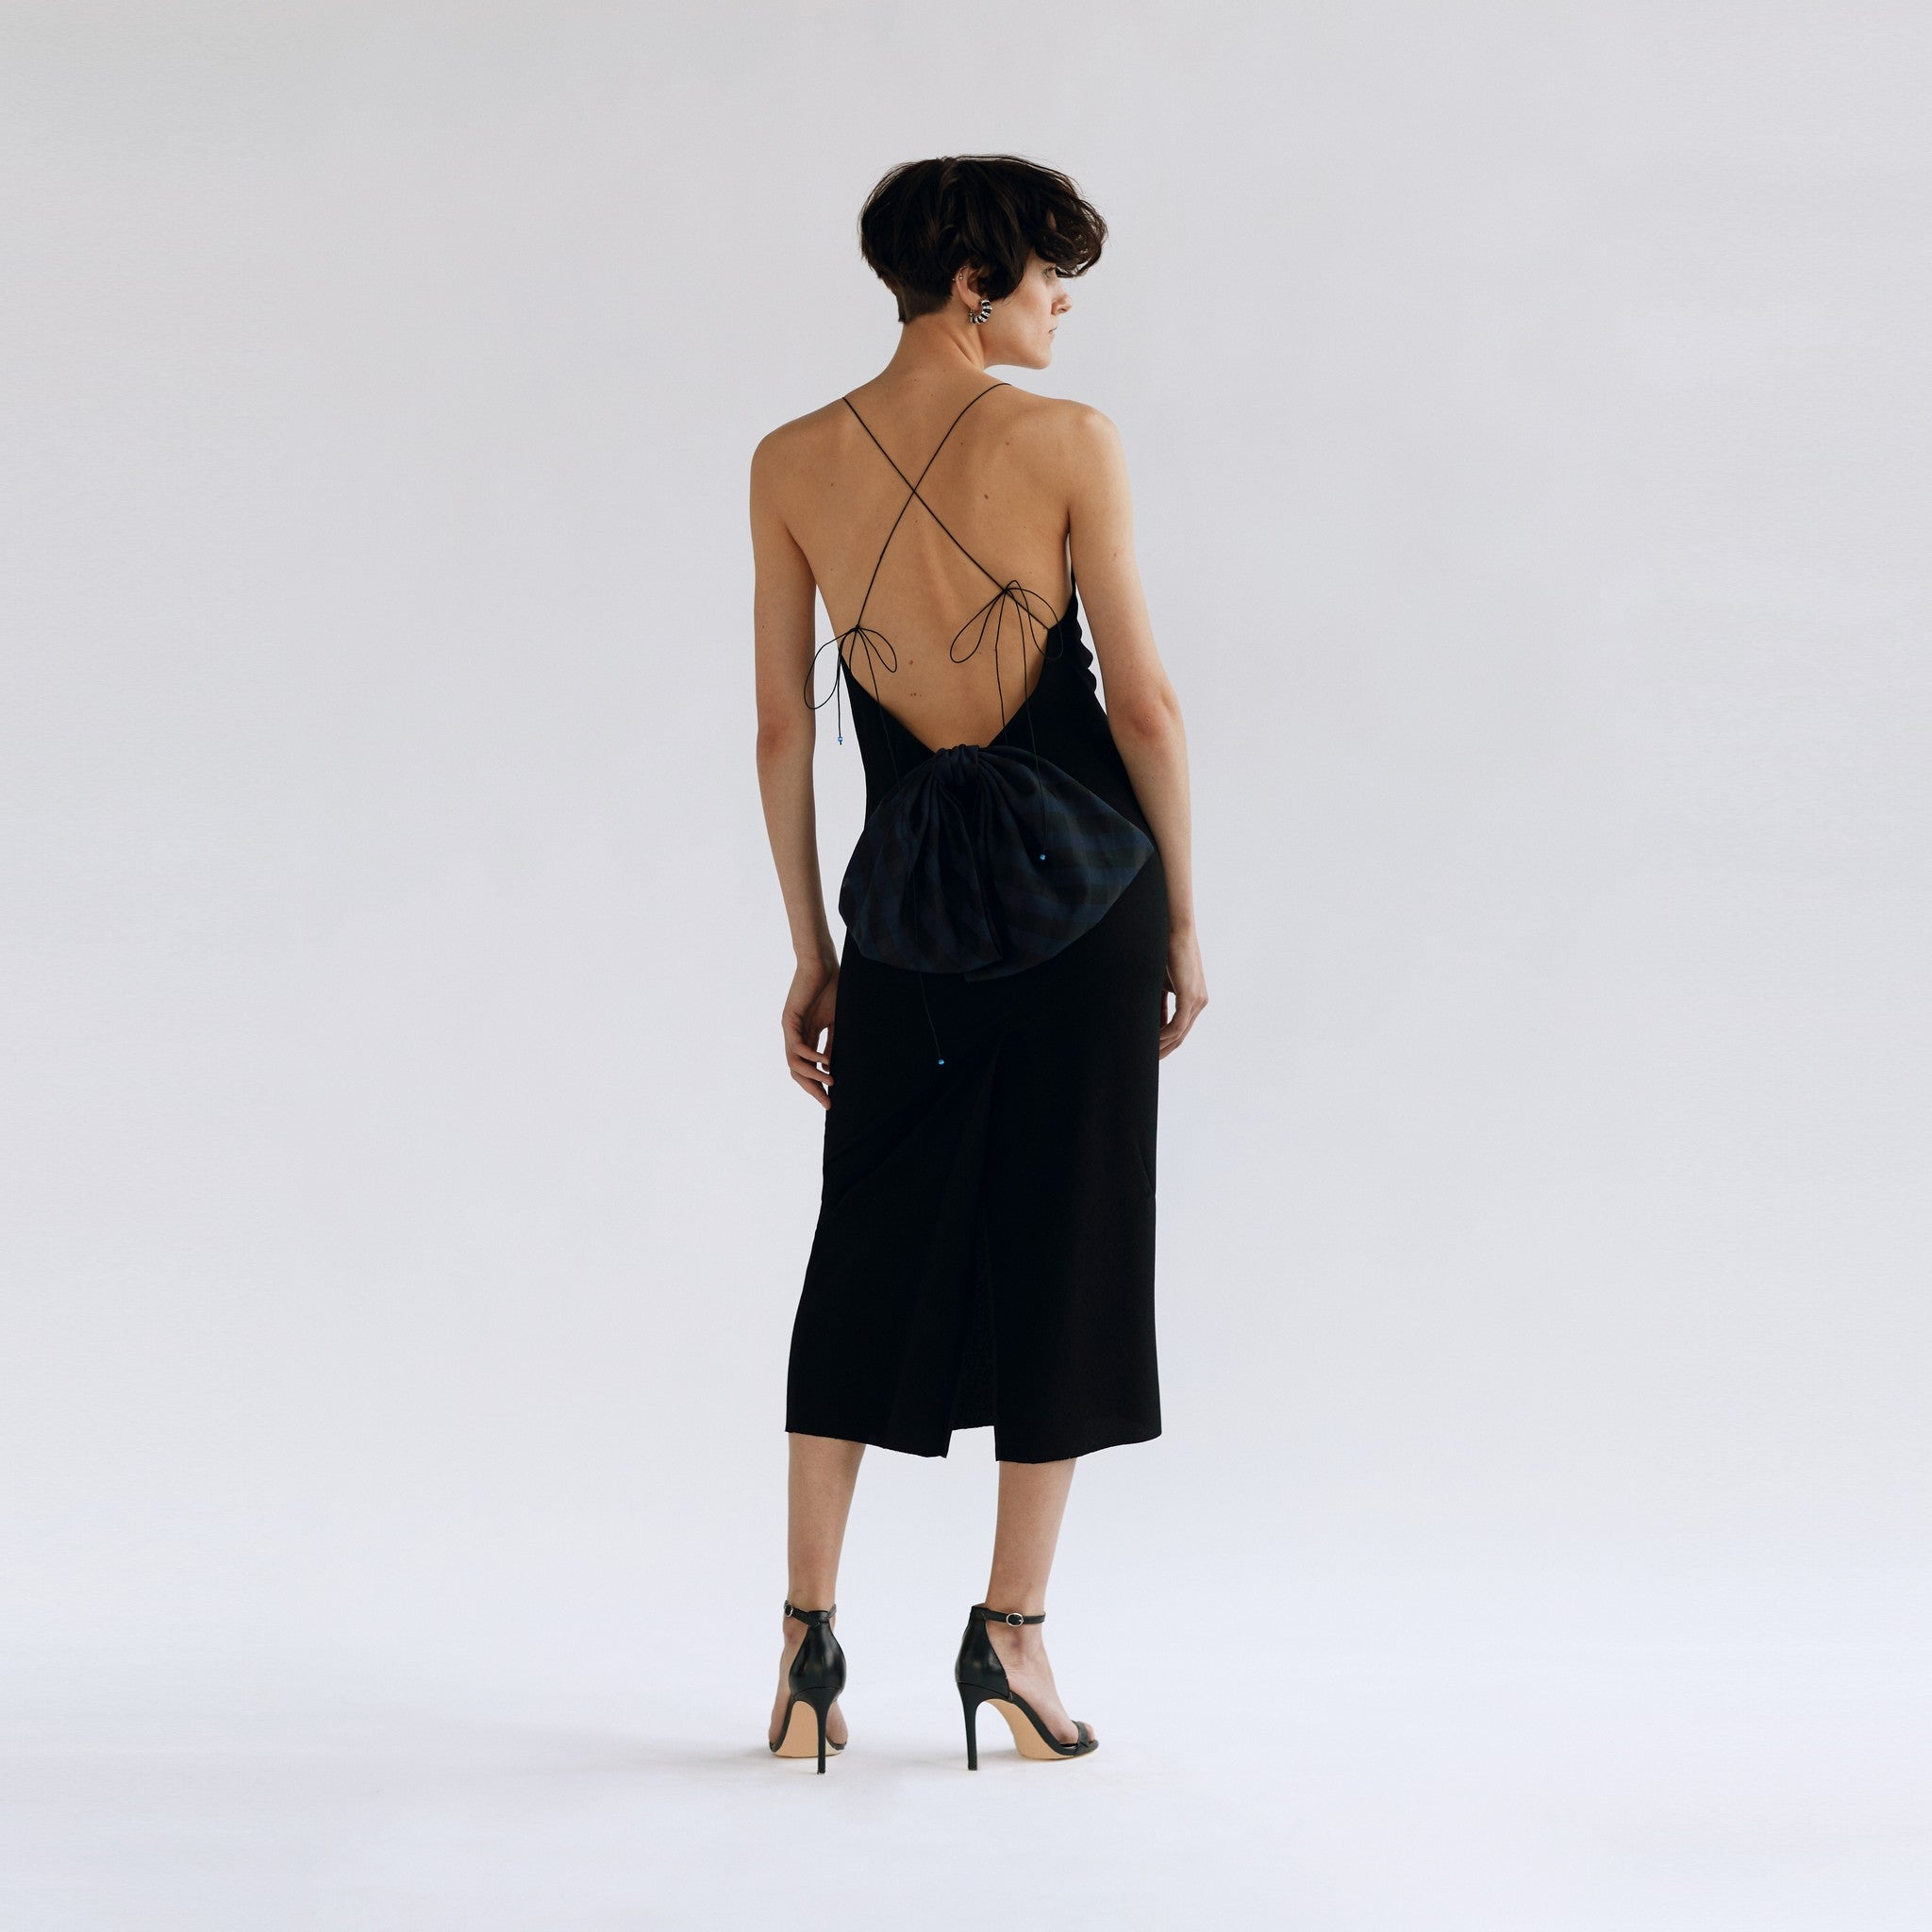 Model in 'Jerry Hall' dress, back view.